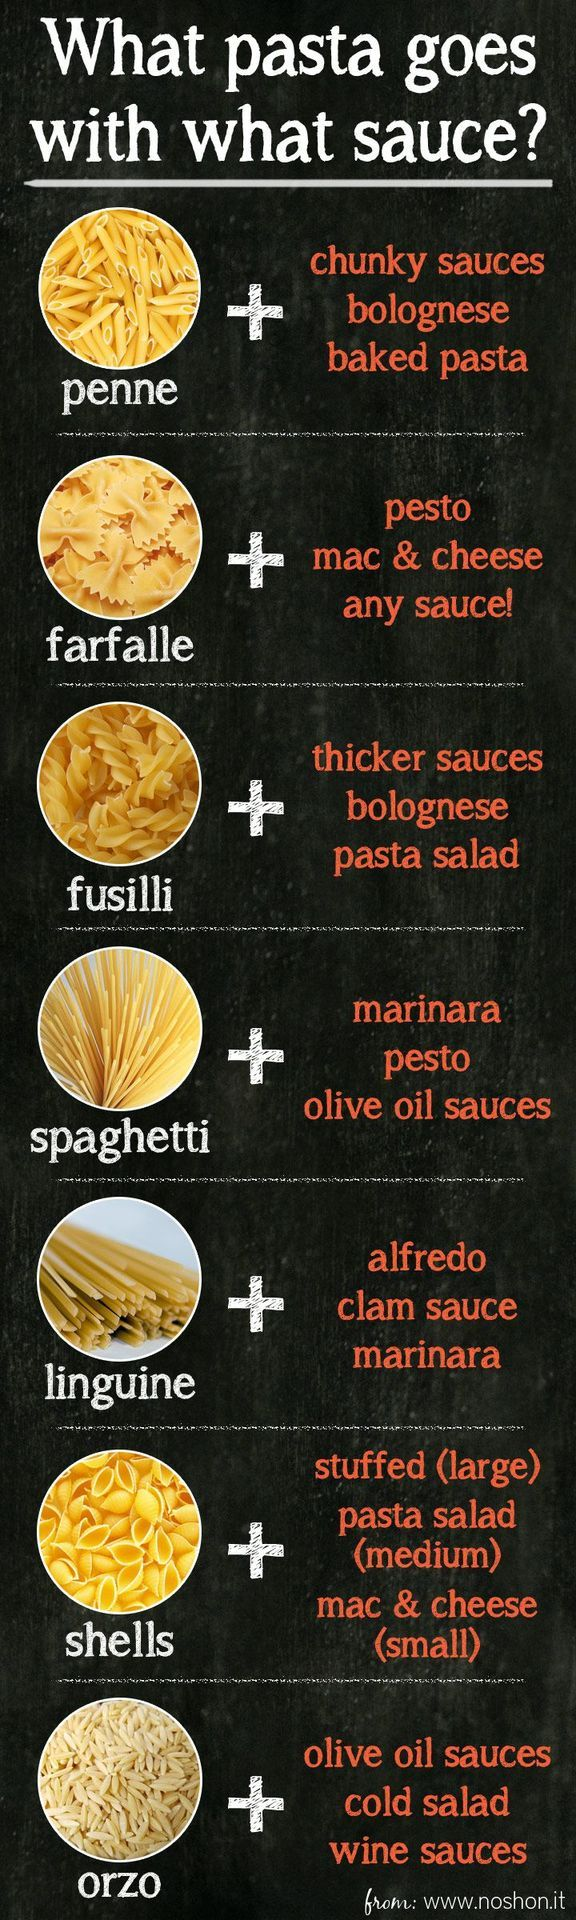 ~PASTA / SAUCE CHART: What shapes go with what sauces | House of Beccaria